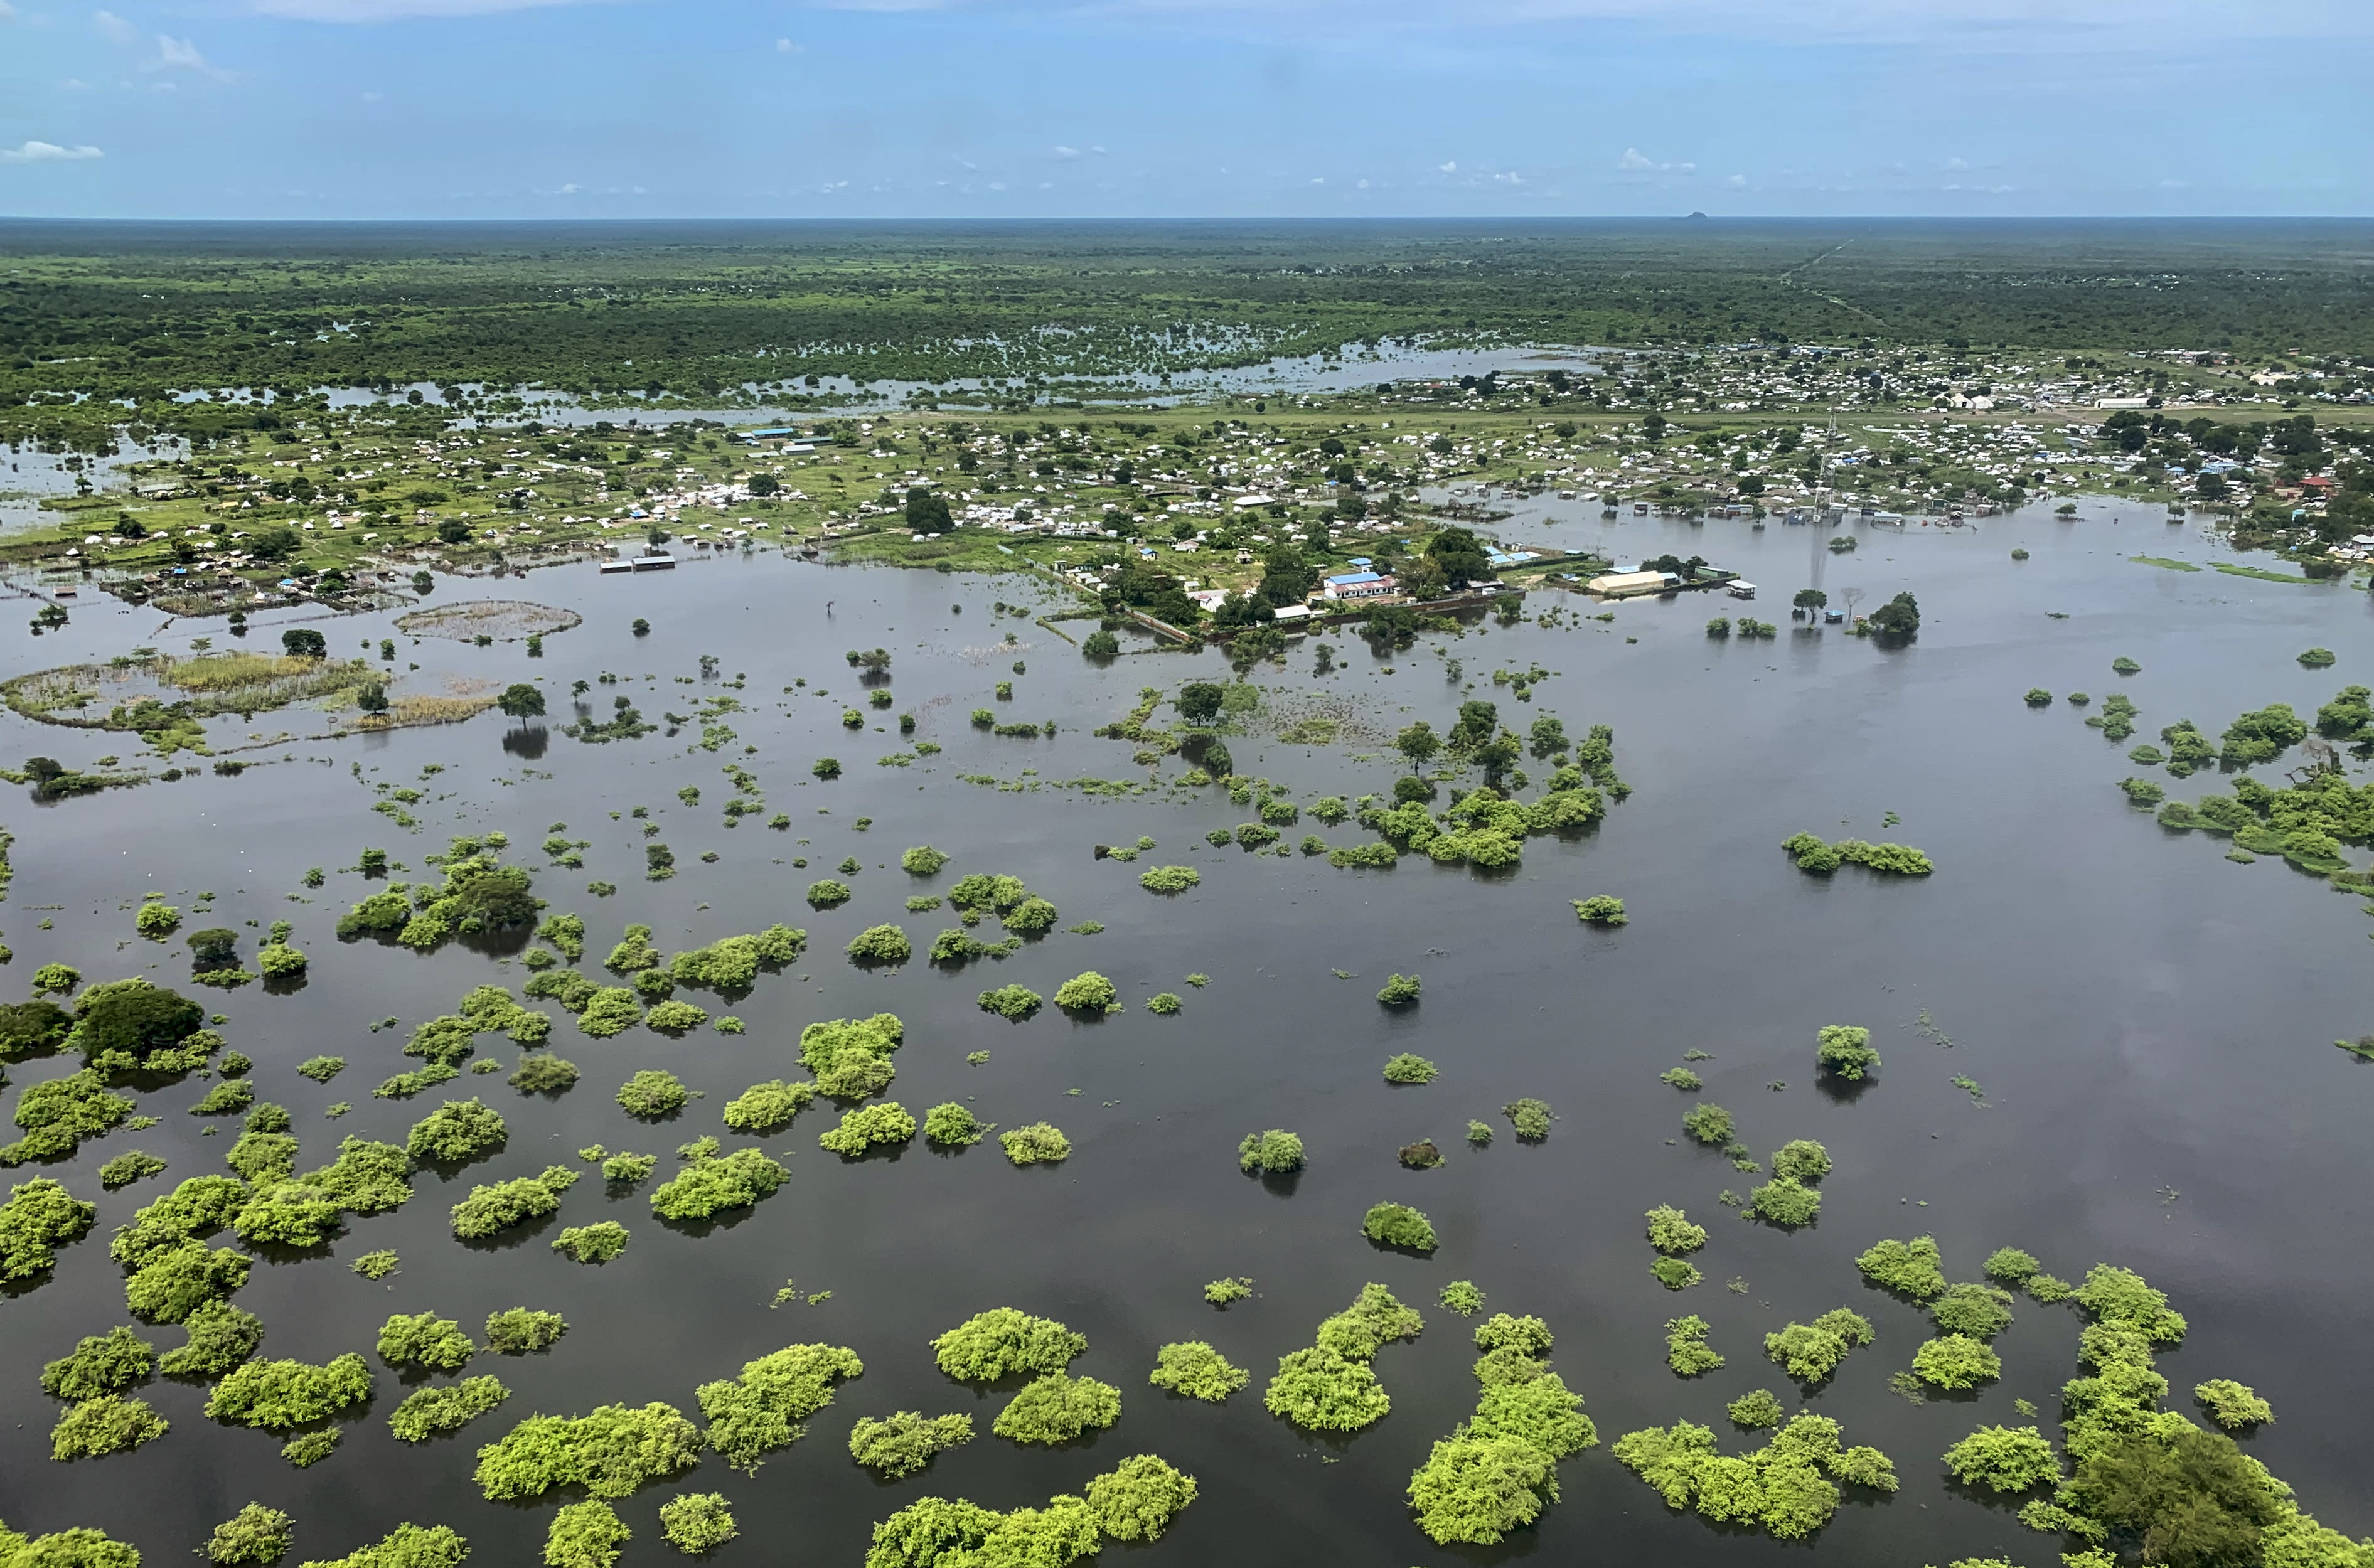 Flooding is seen from the air in the Greater Pibor Administrative Area in South Sudan, Friday, Sept. 4, 2020. Flooding has affected well over a million people across East Africa, another calamity threatening food security on top of a historic locust outbreak and the coronavirus pandemic. (Tetiana Gaviuk/Medecins Sans Frontieres via AP)